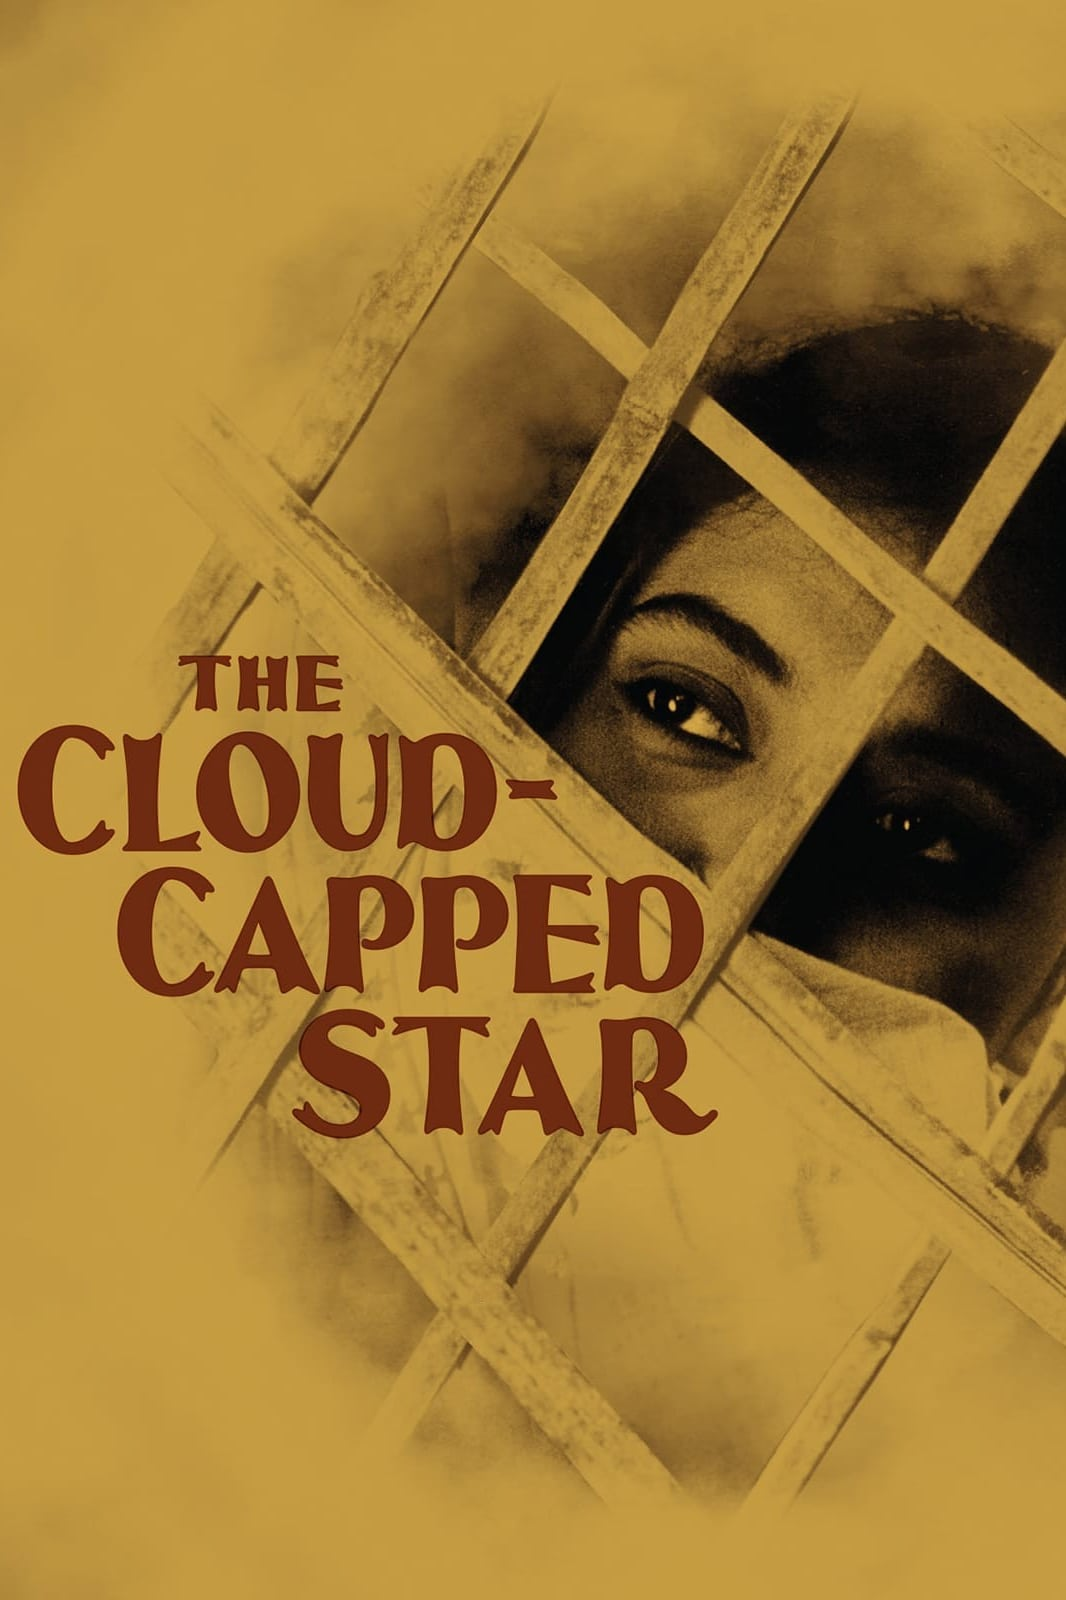 The Cloud-Capped Star (1960)